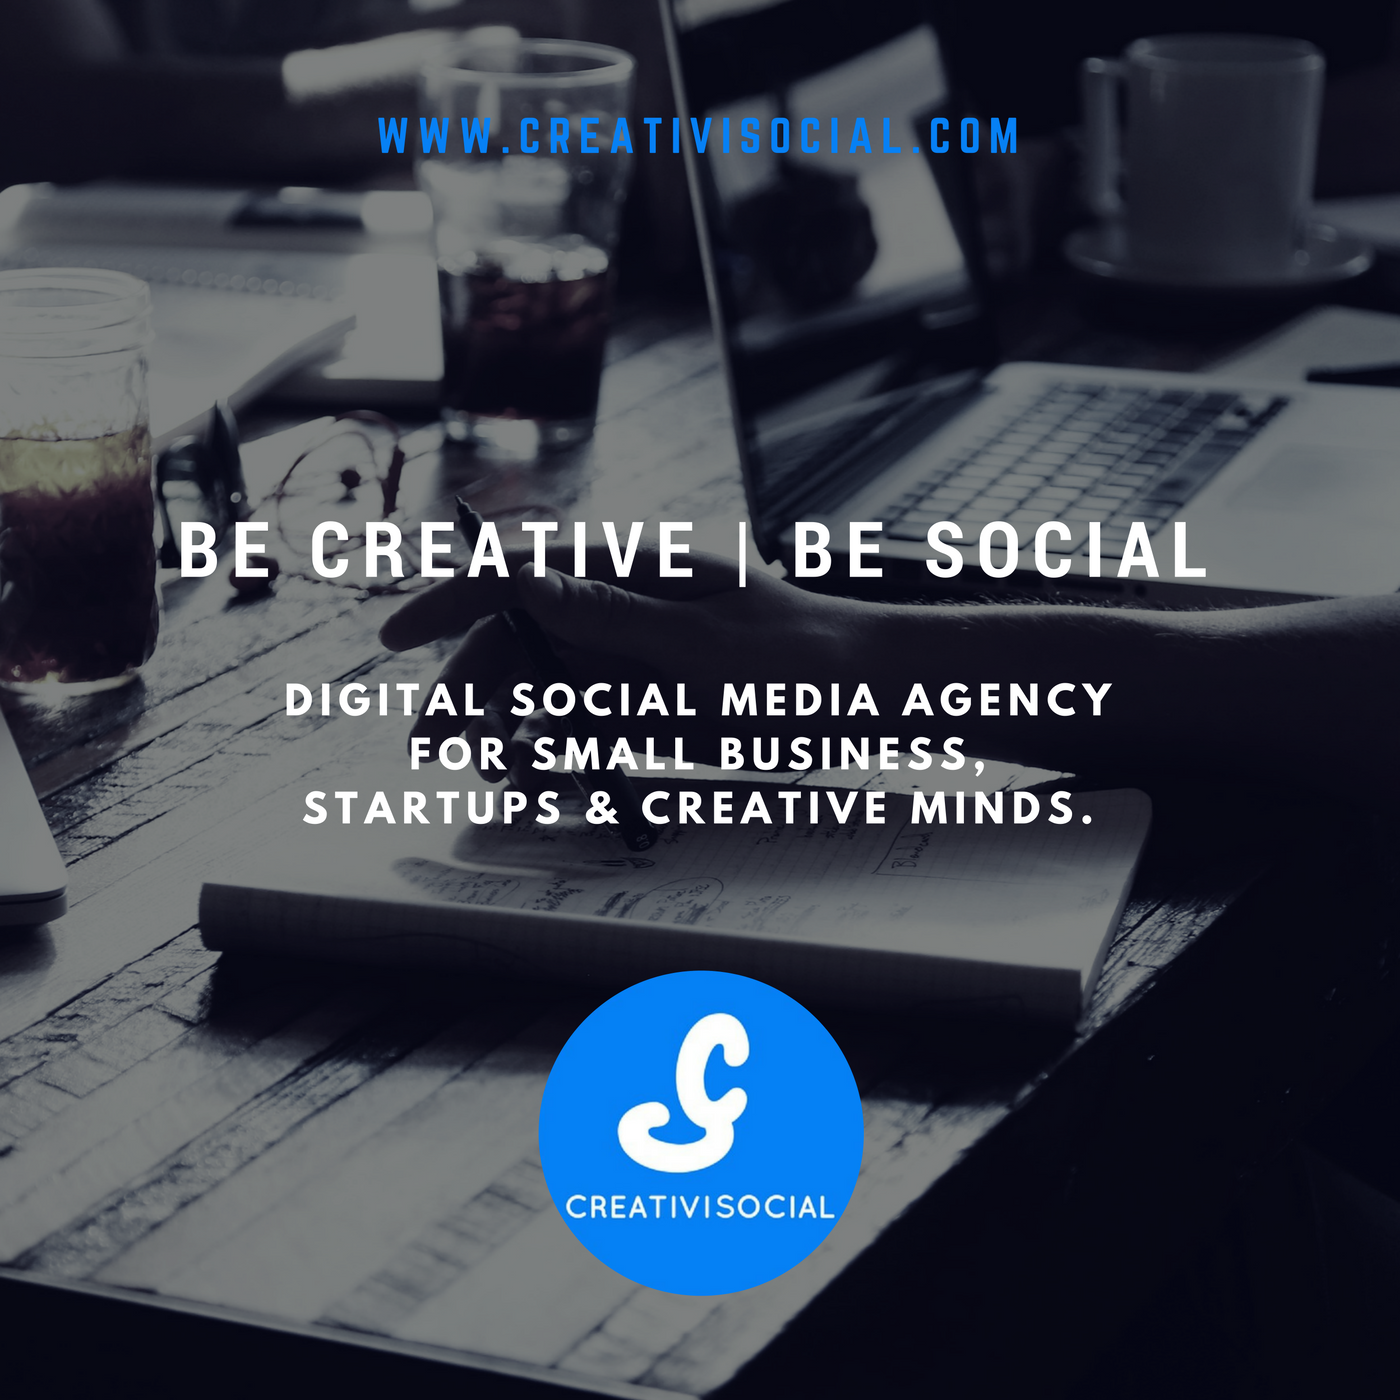 CreativiSocial Digital Social Media Agency for small business, startups and creative minds